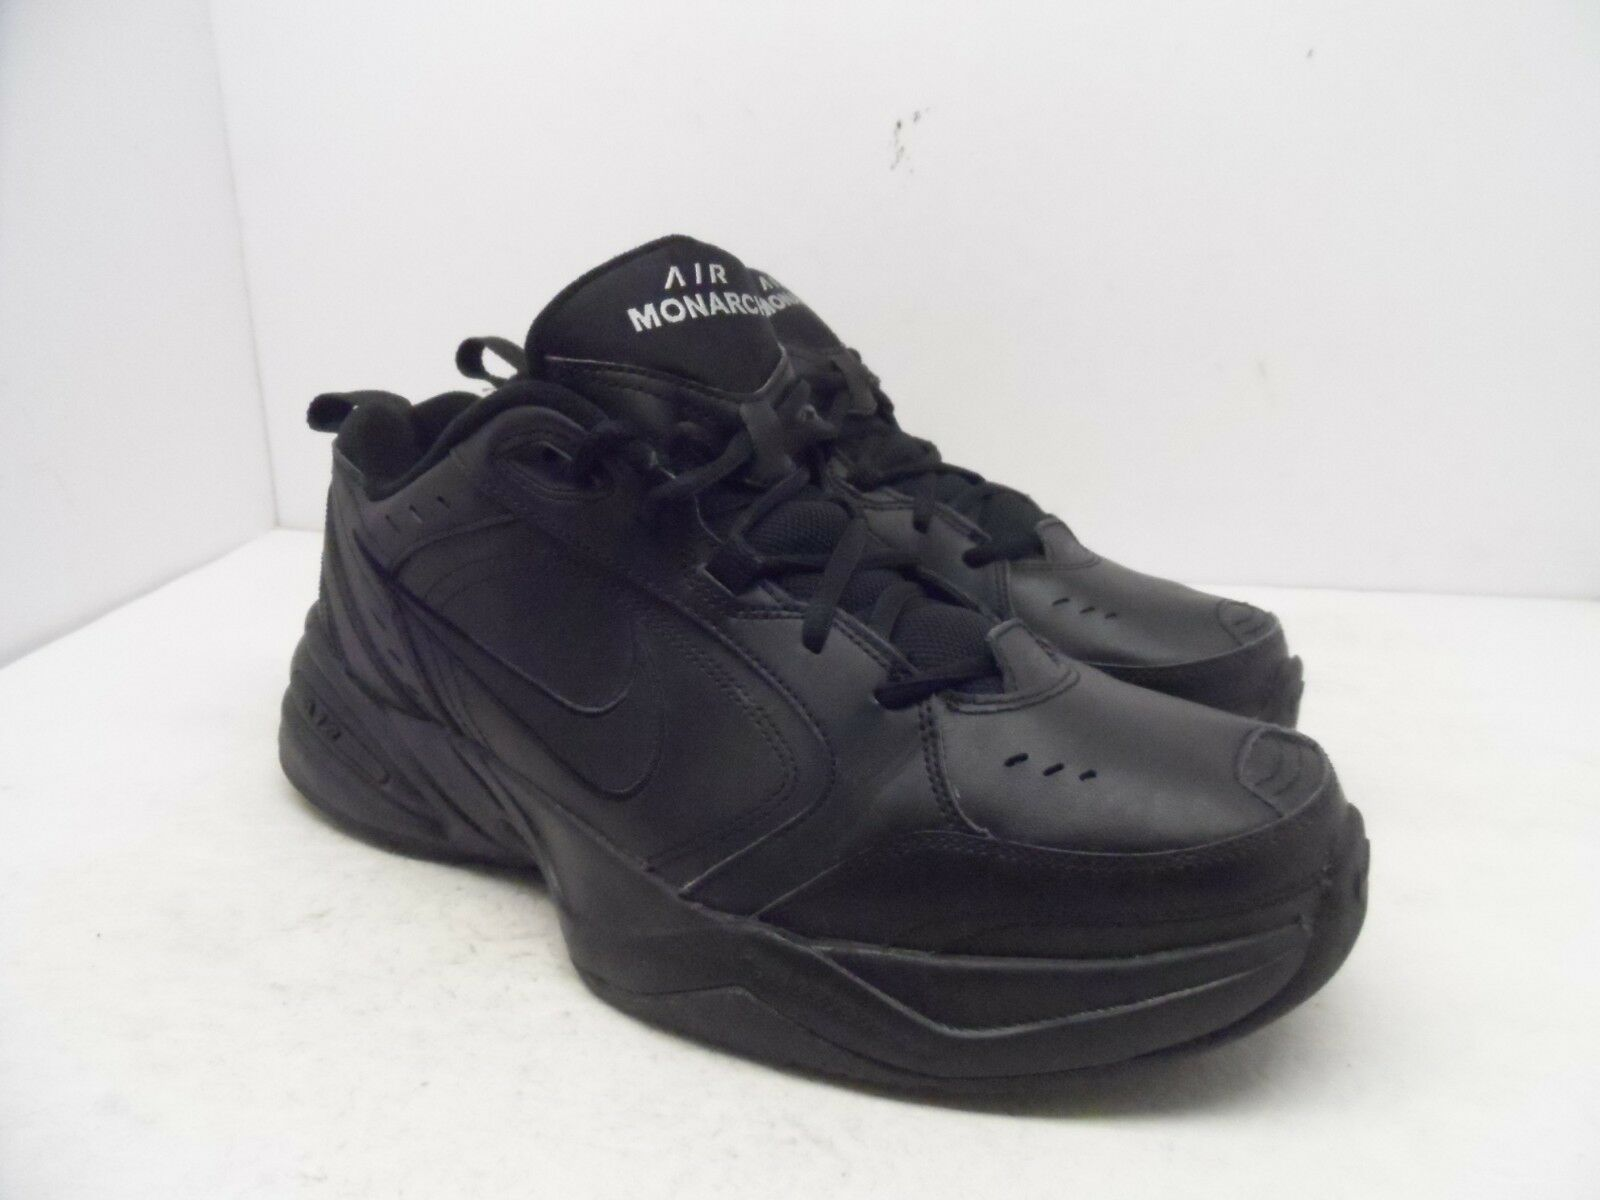 Nike Men's Air Monarch IV Athletic Training shoes Black Black Size 11.5M